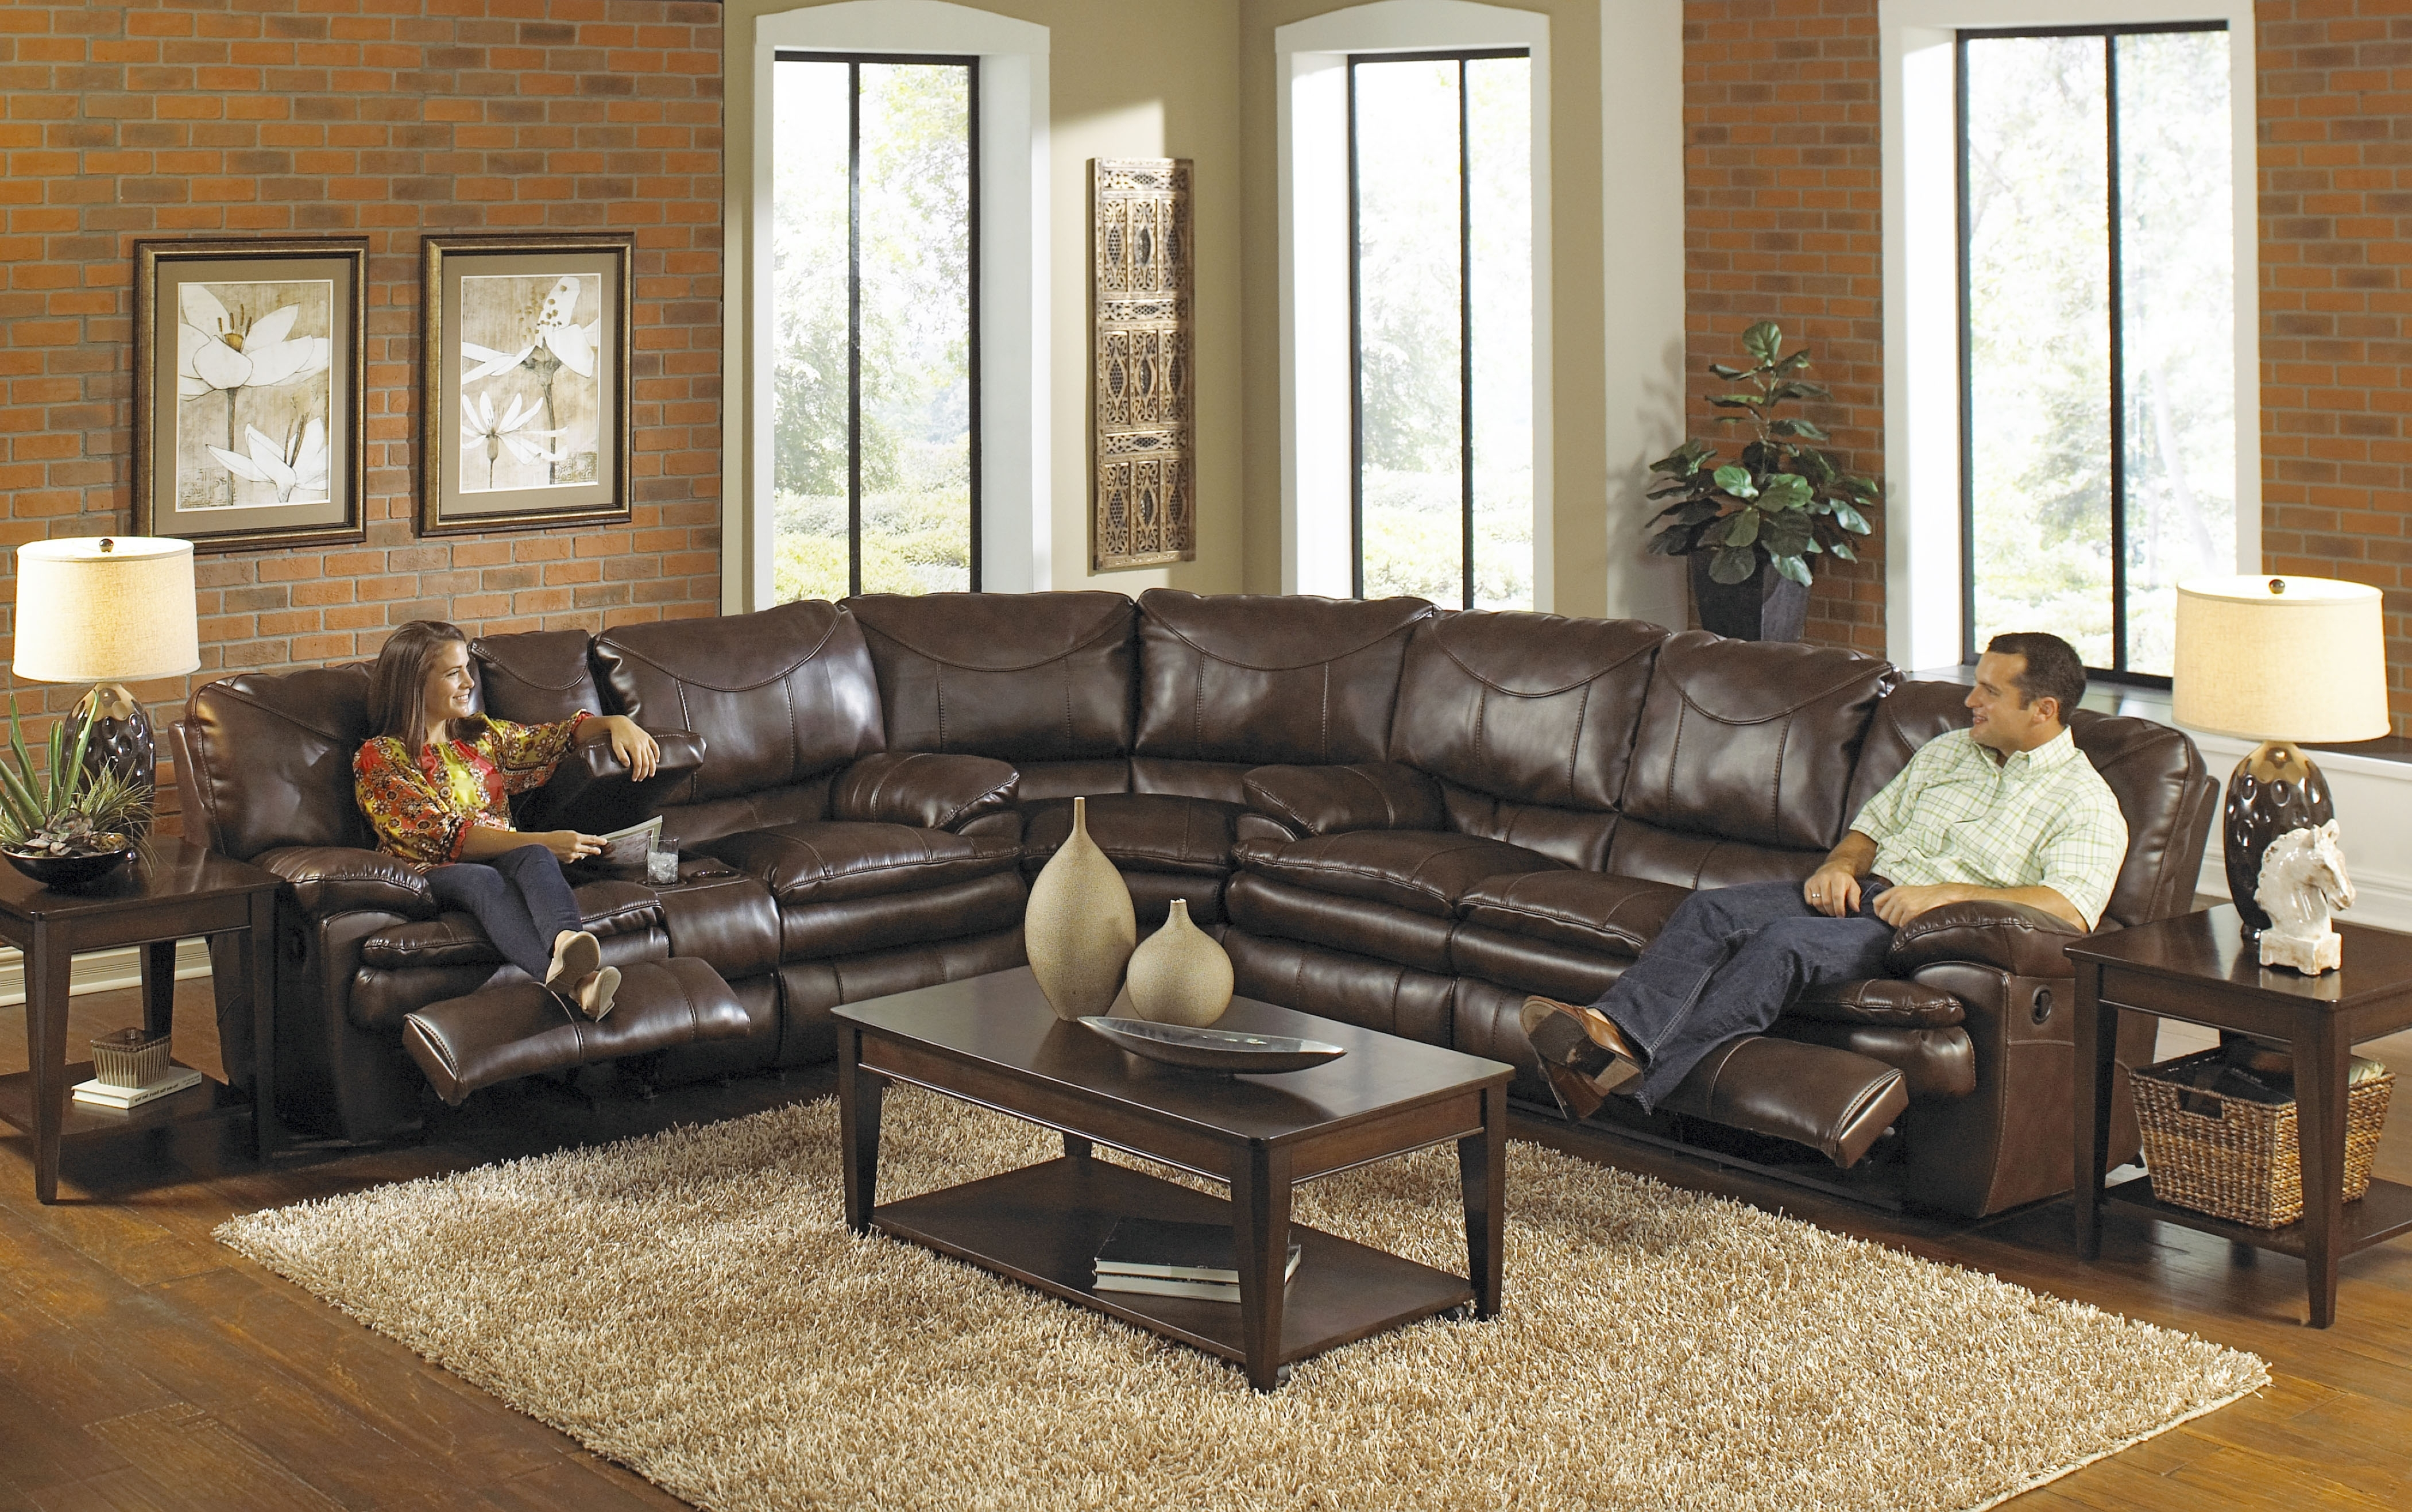 Best Leather Sectional Sofa With Recliner Photos – Liltigertoo For Most Popular Leather Sectional Sofas (View 19 of 20)